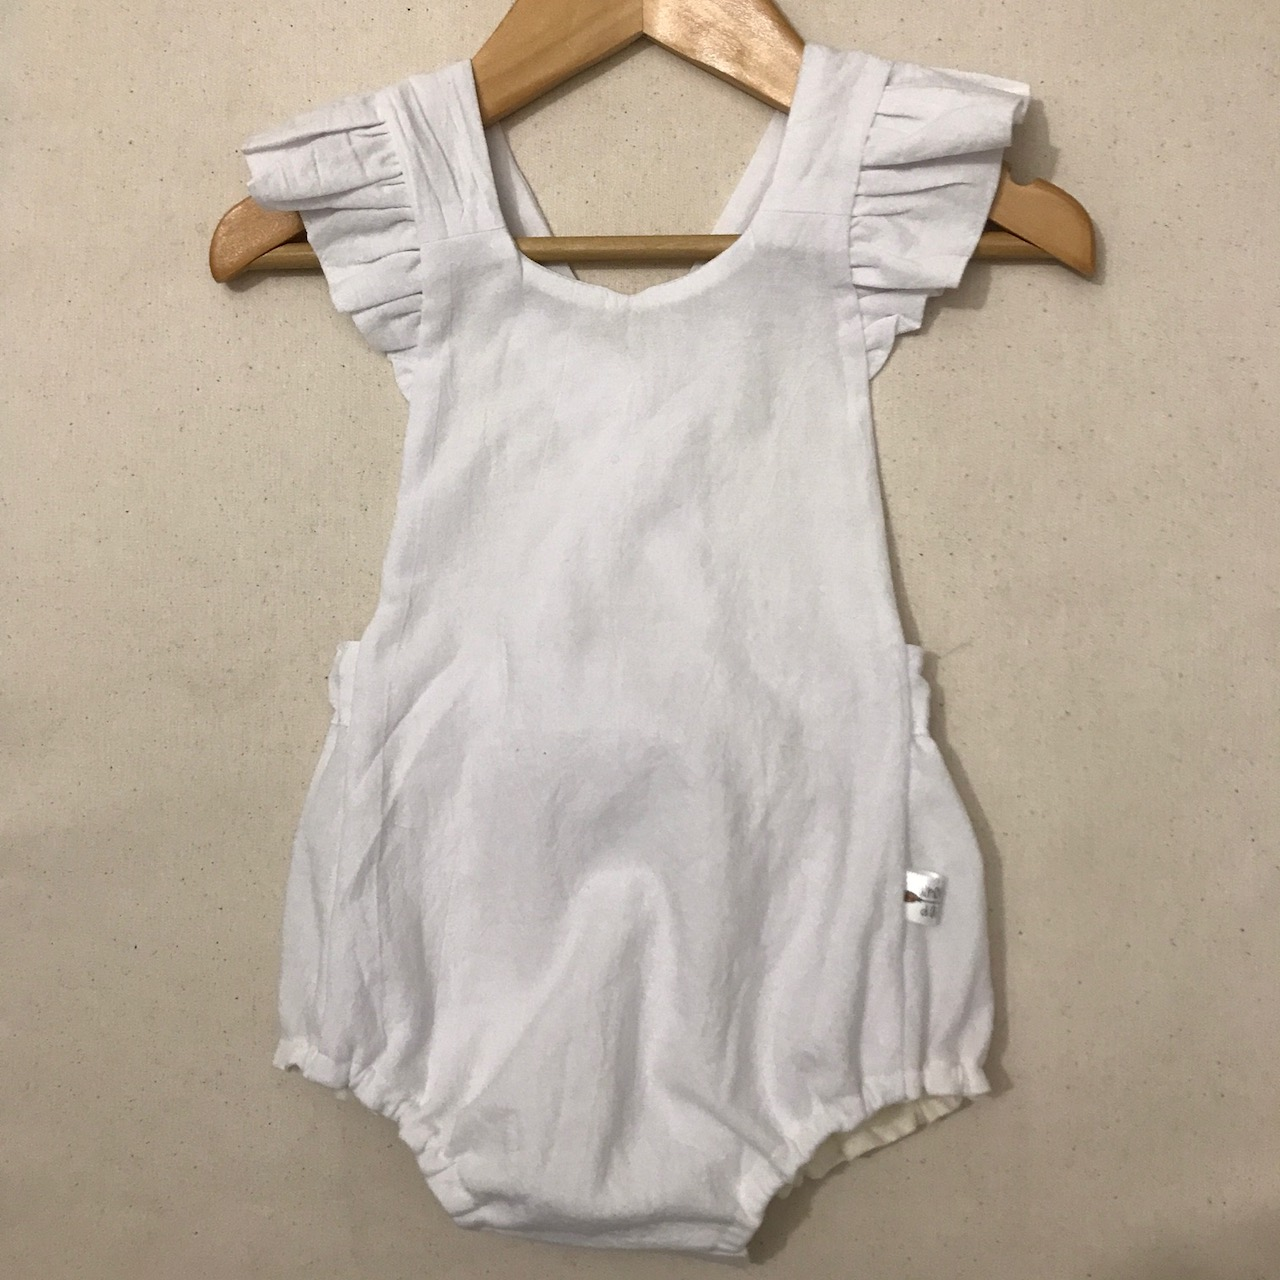 Oh goodness, this little summer romper is just too adorable!. Its criss-cross open back with frill detail will look oh so cute on your little one.  Features:   100% cotton material (light to medium weight) - do not tumble dry buttonson the inner side of backpiece to attach straps to bodice (2 height adjustments for strap length) 3 snap closures at crotch elasticated waist and leg piecesfor the perfect fit